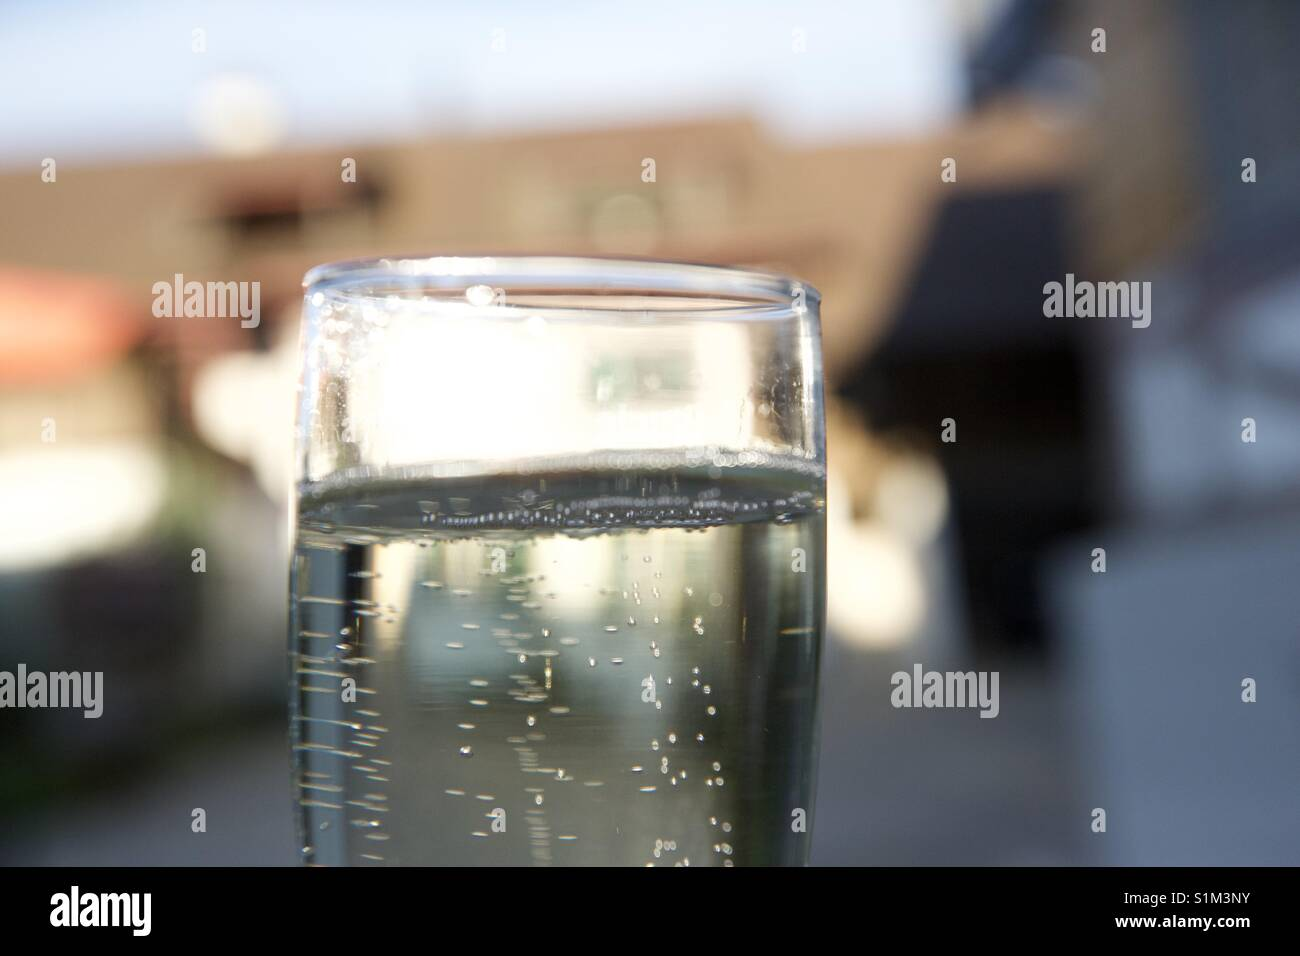 Breakout The bubbly - Stock Image